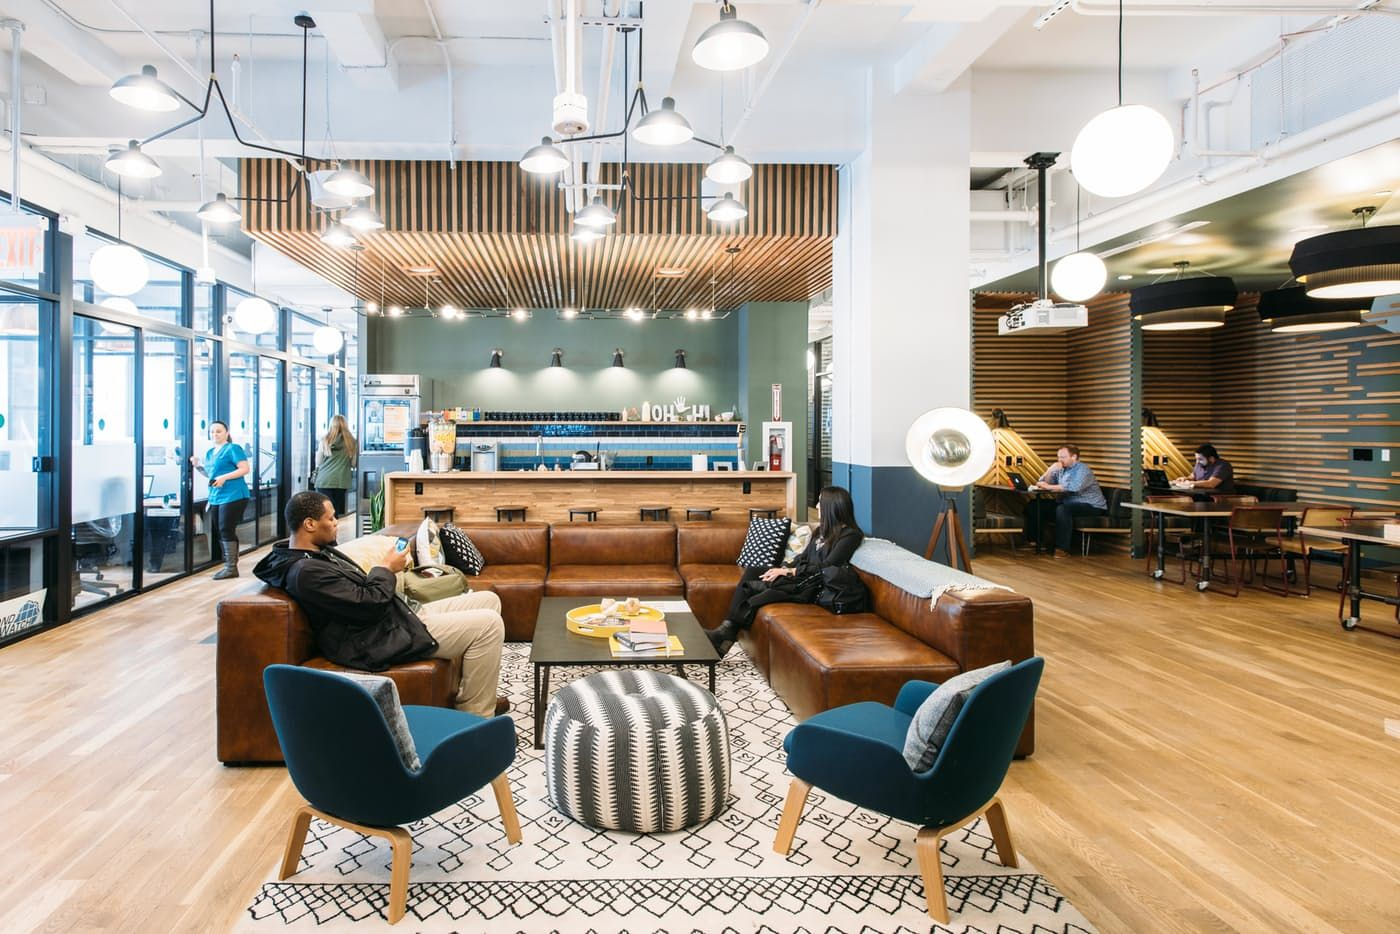 5th Ave Coworking Corporate Office Design Commercial Office Design Office Design Inspiration